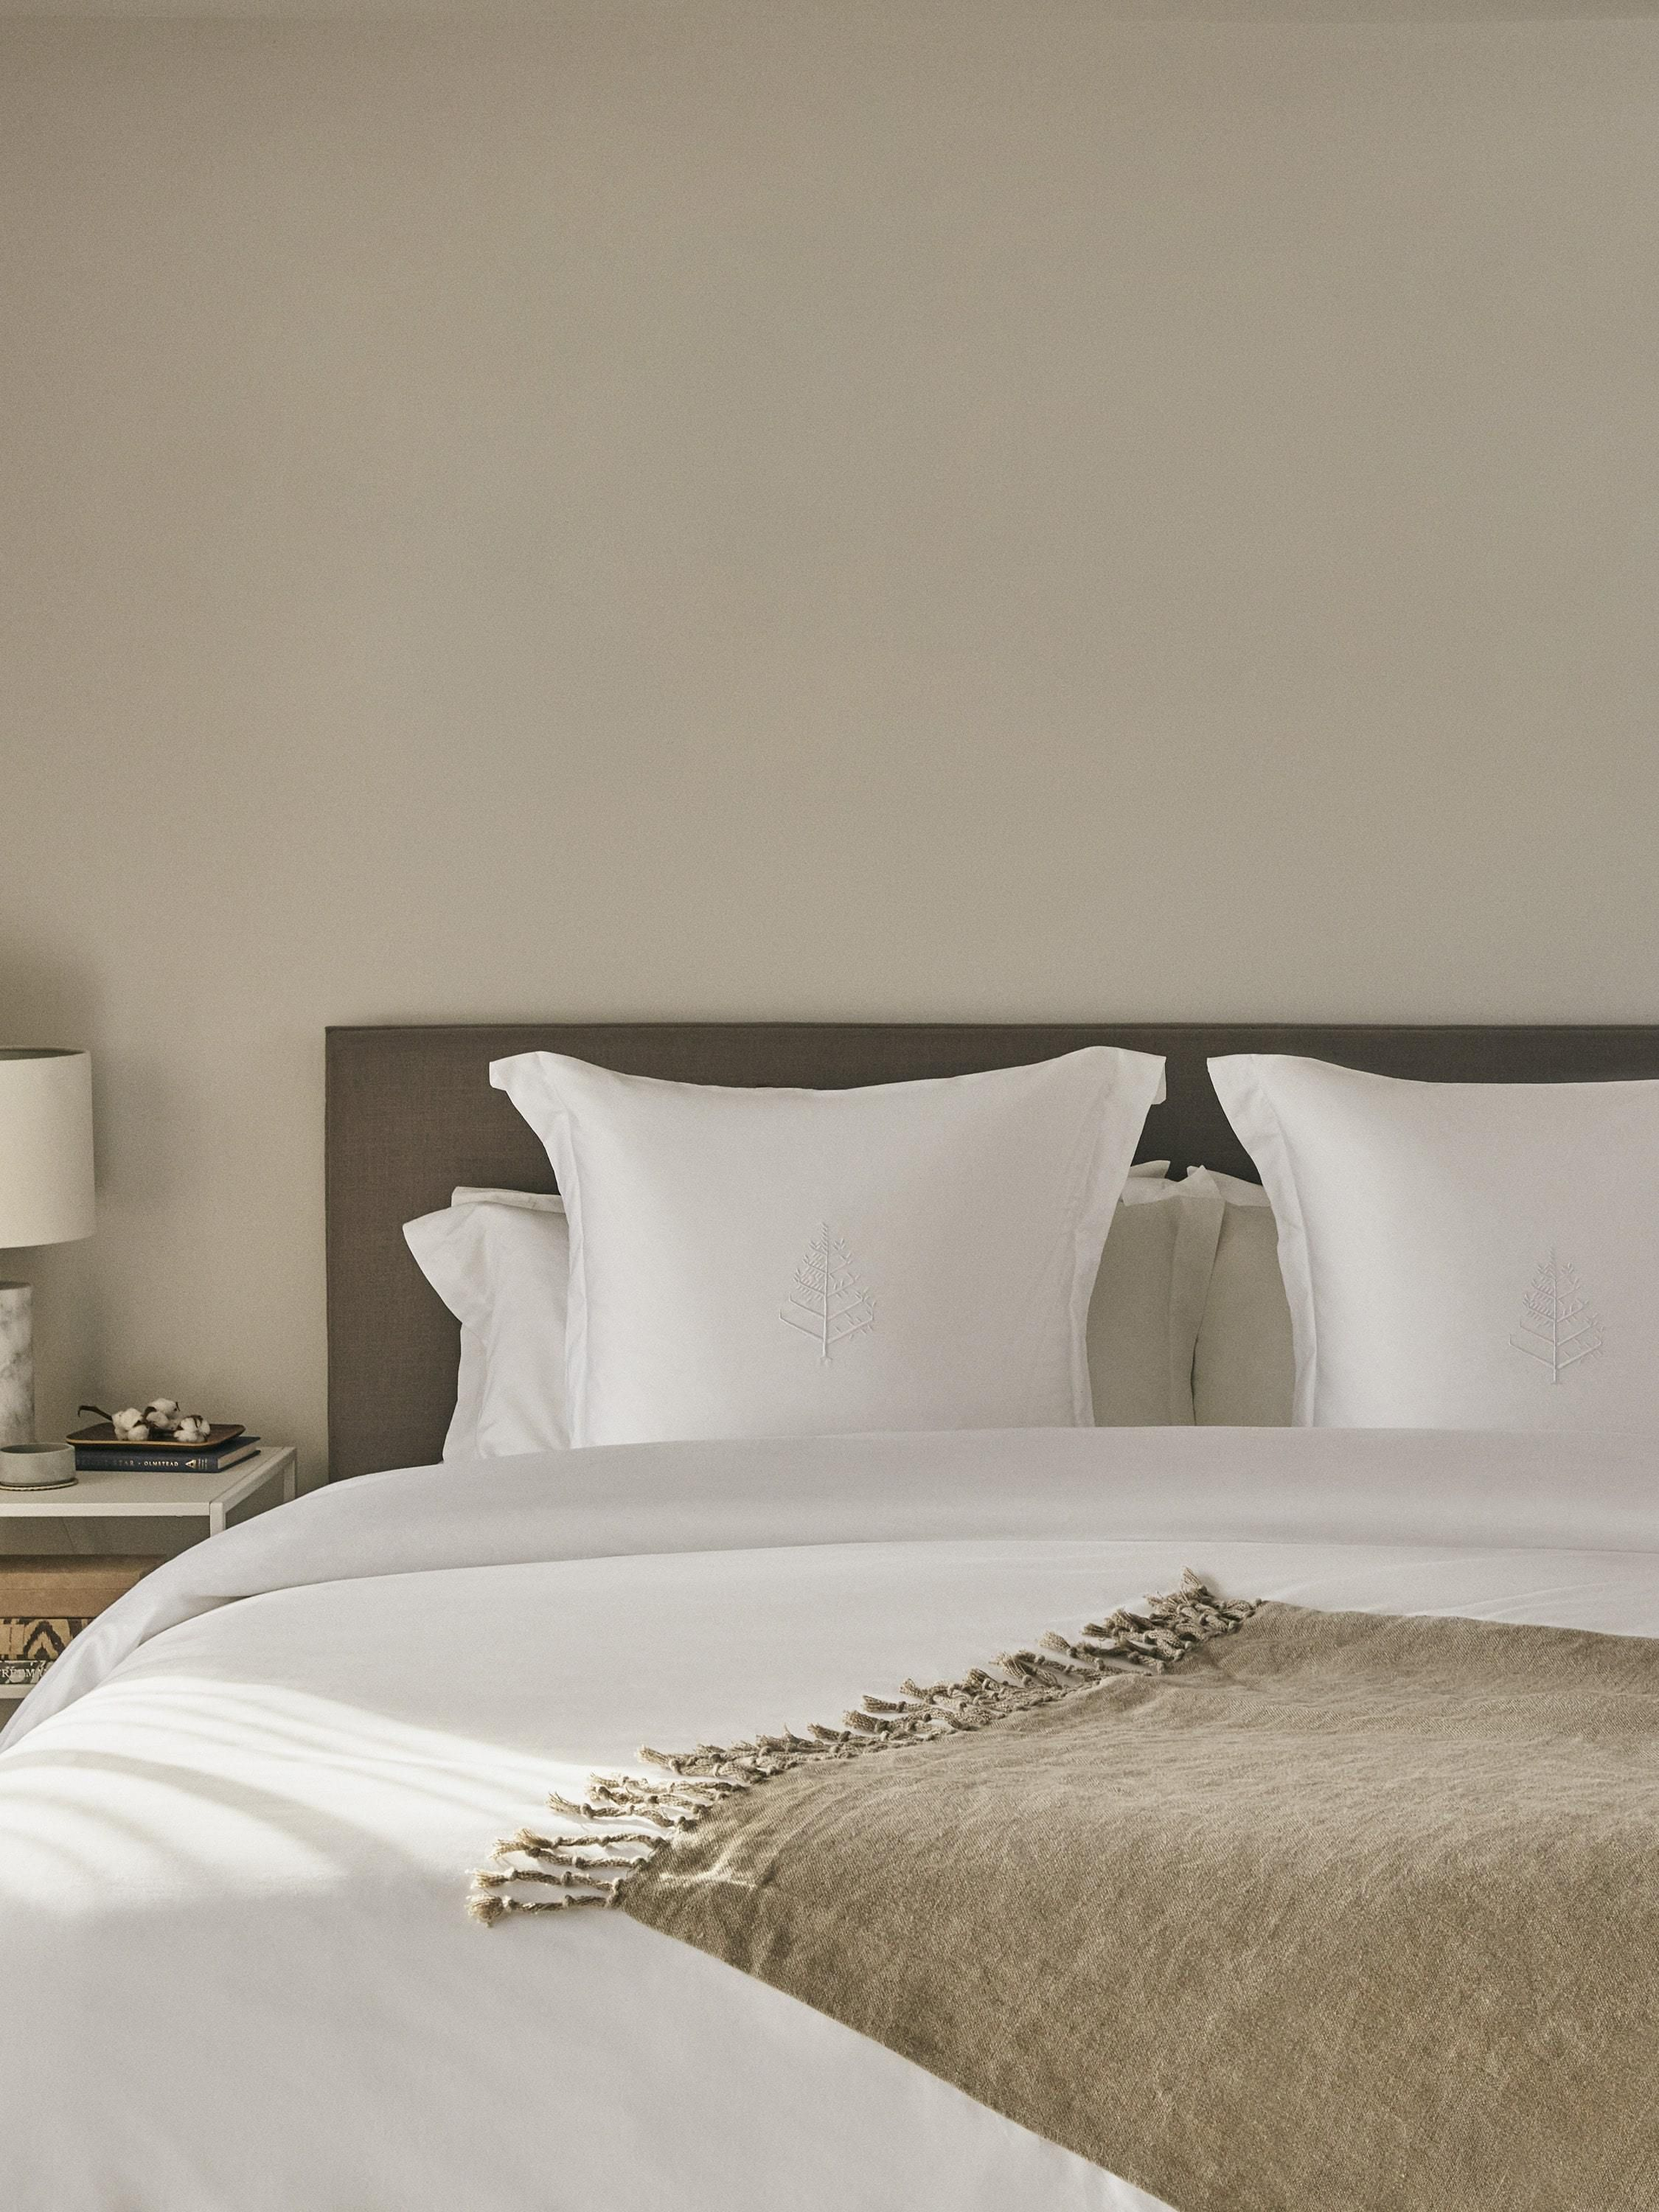 Luxury Hotel Bedding, Towels & Linens Four Seasons At